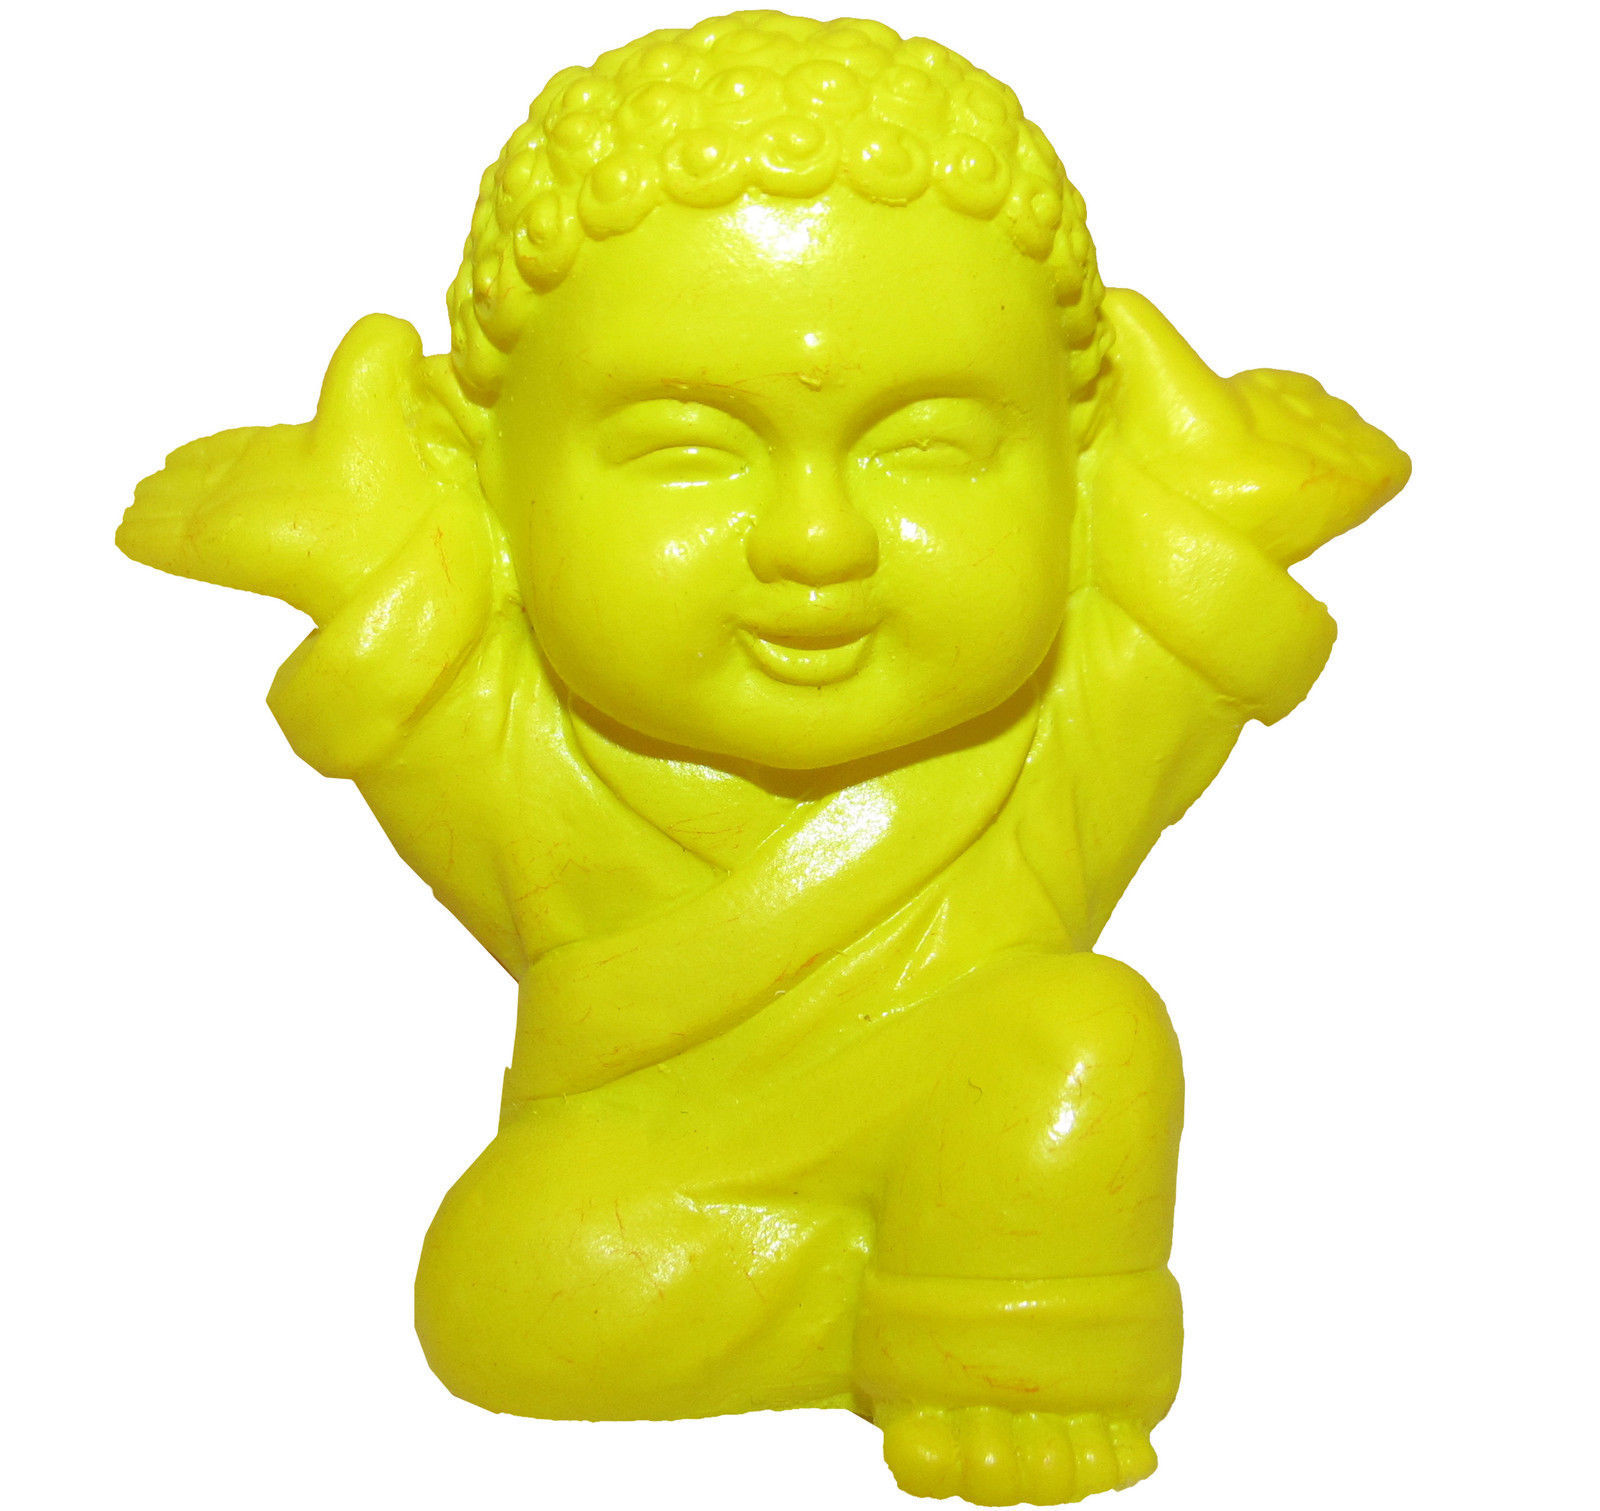 Pocket Buddha Yellow Joyful Buddhism Mini Figure Figurine Toy